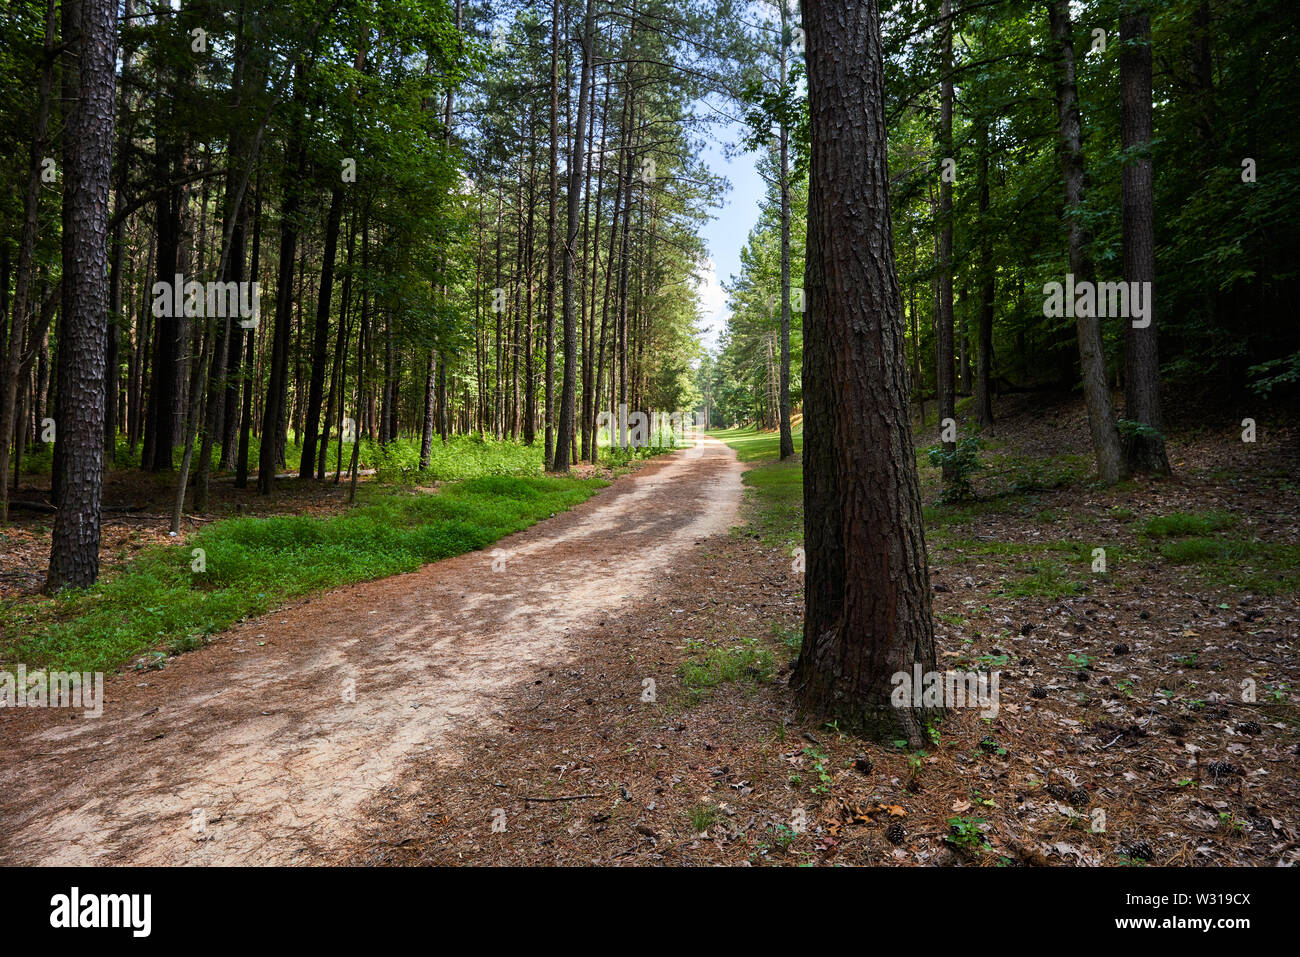 The Historic Occoneechee Speedway Trail in Hillsborough, North Carolina is the only remaining dirt track from the inaugural 1949 NASCAR season. - Stock Image